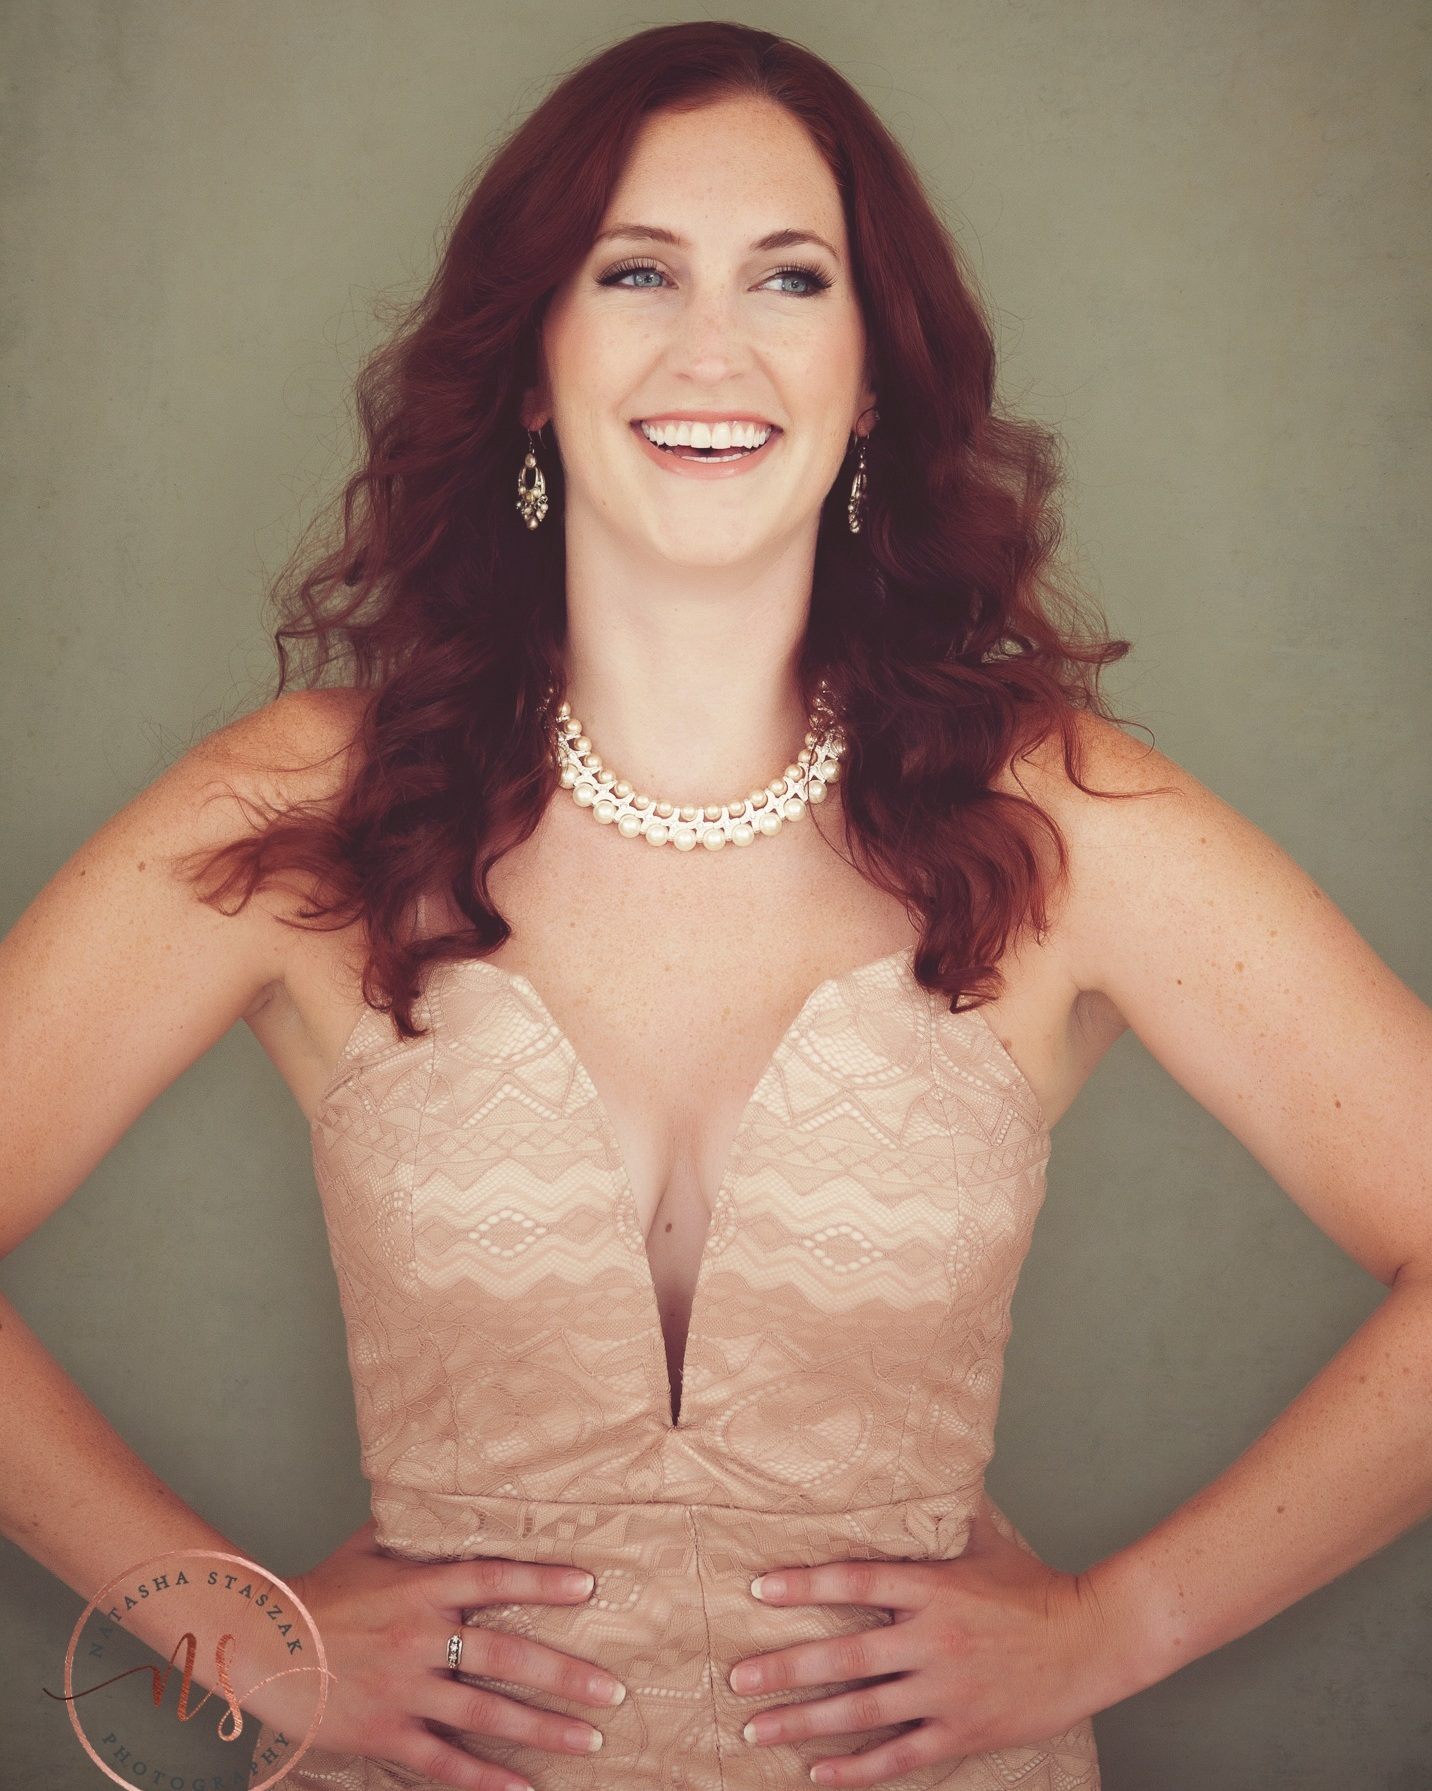 Portrait of Cortney Chyme with stunning red head, blue eyes, lace dress, laughing in Hamburg NY